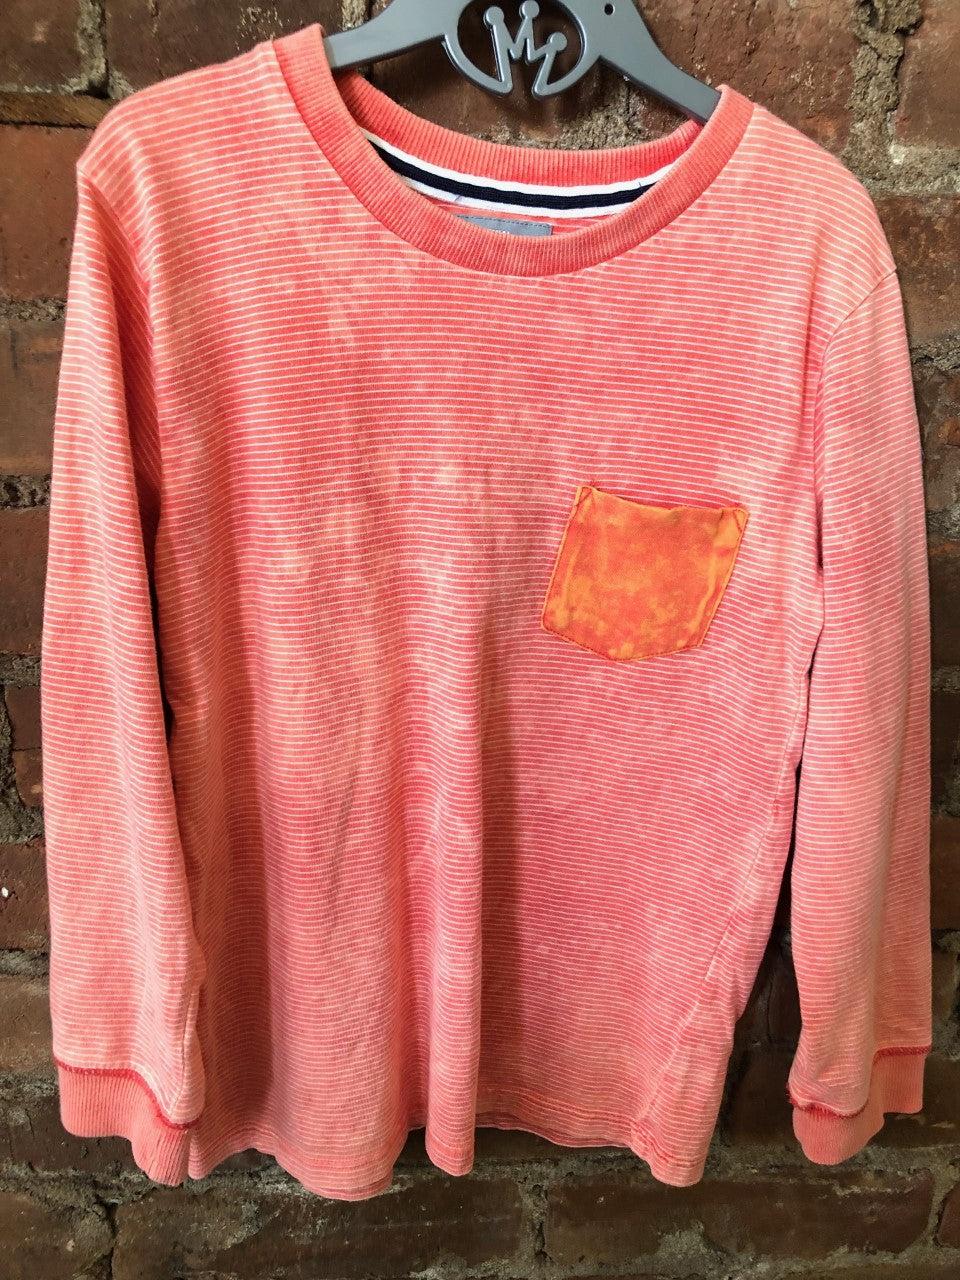 Orange Baseball Tee - Lullaby's Boutique